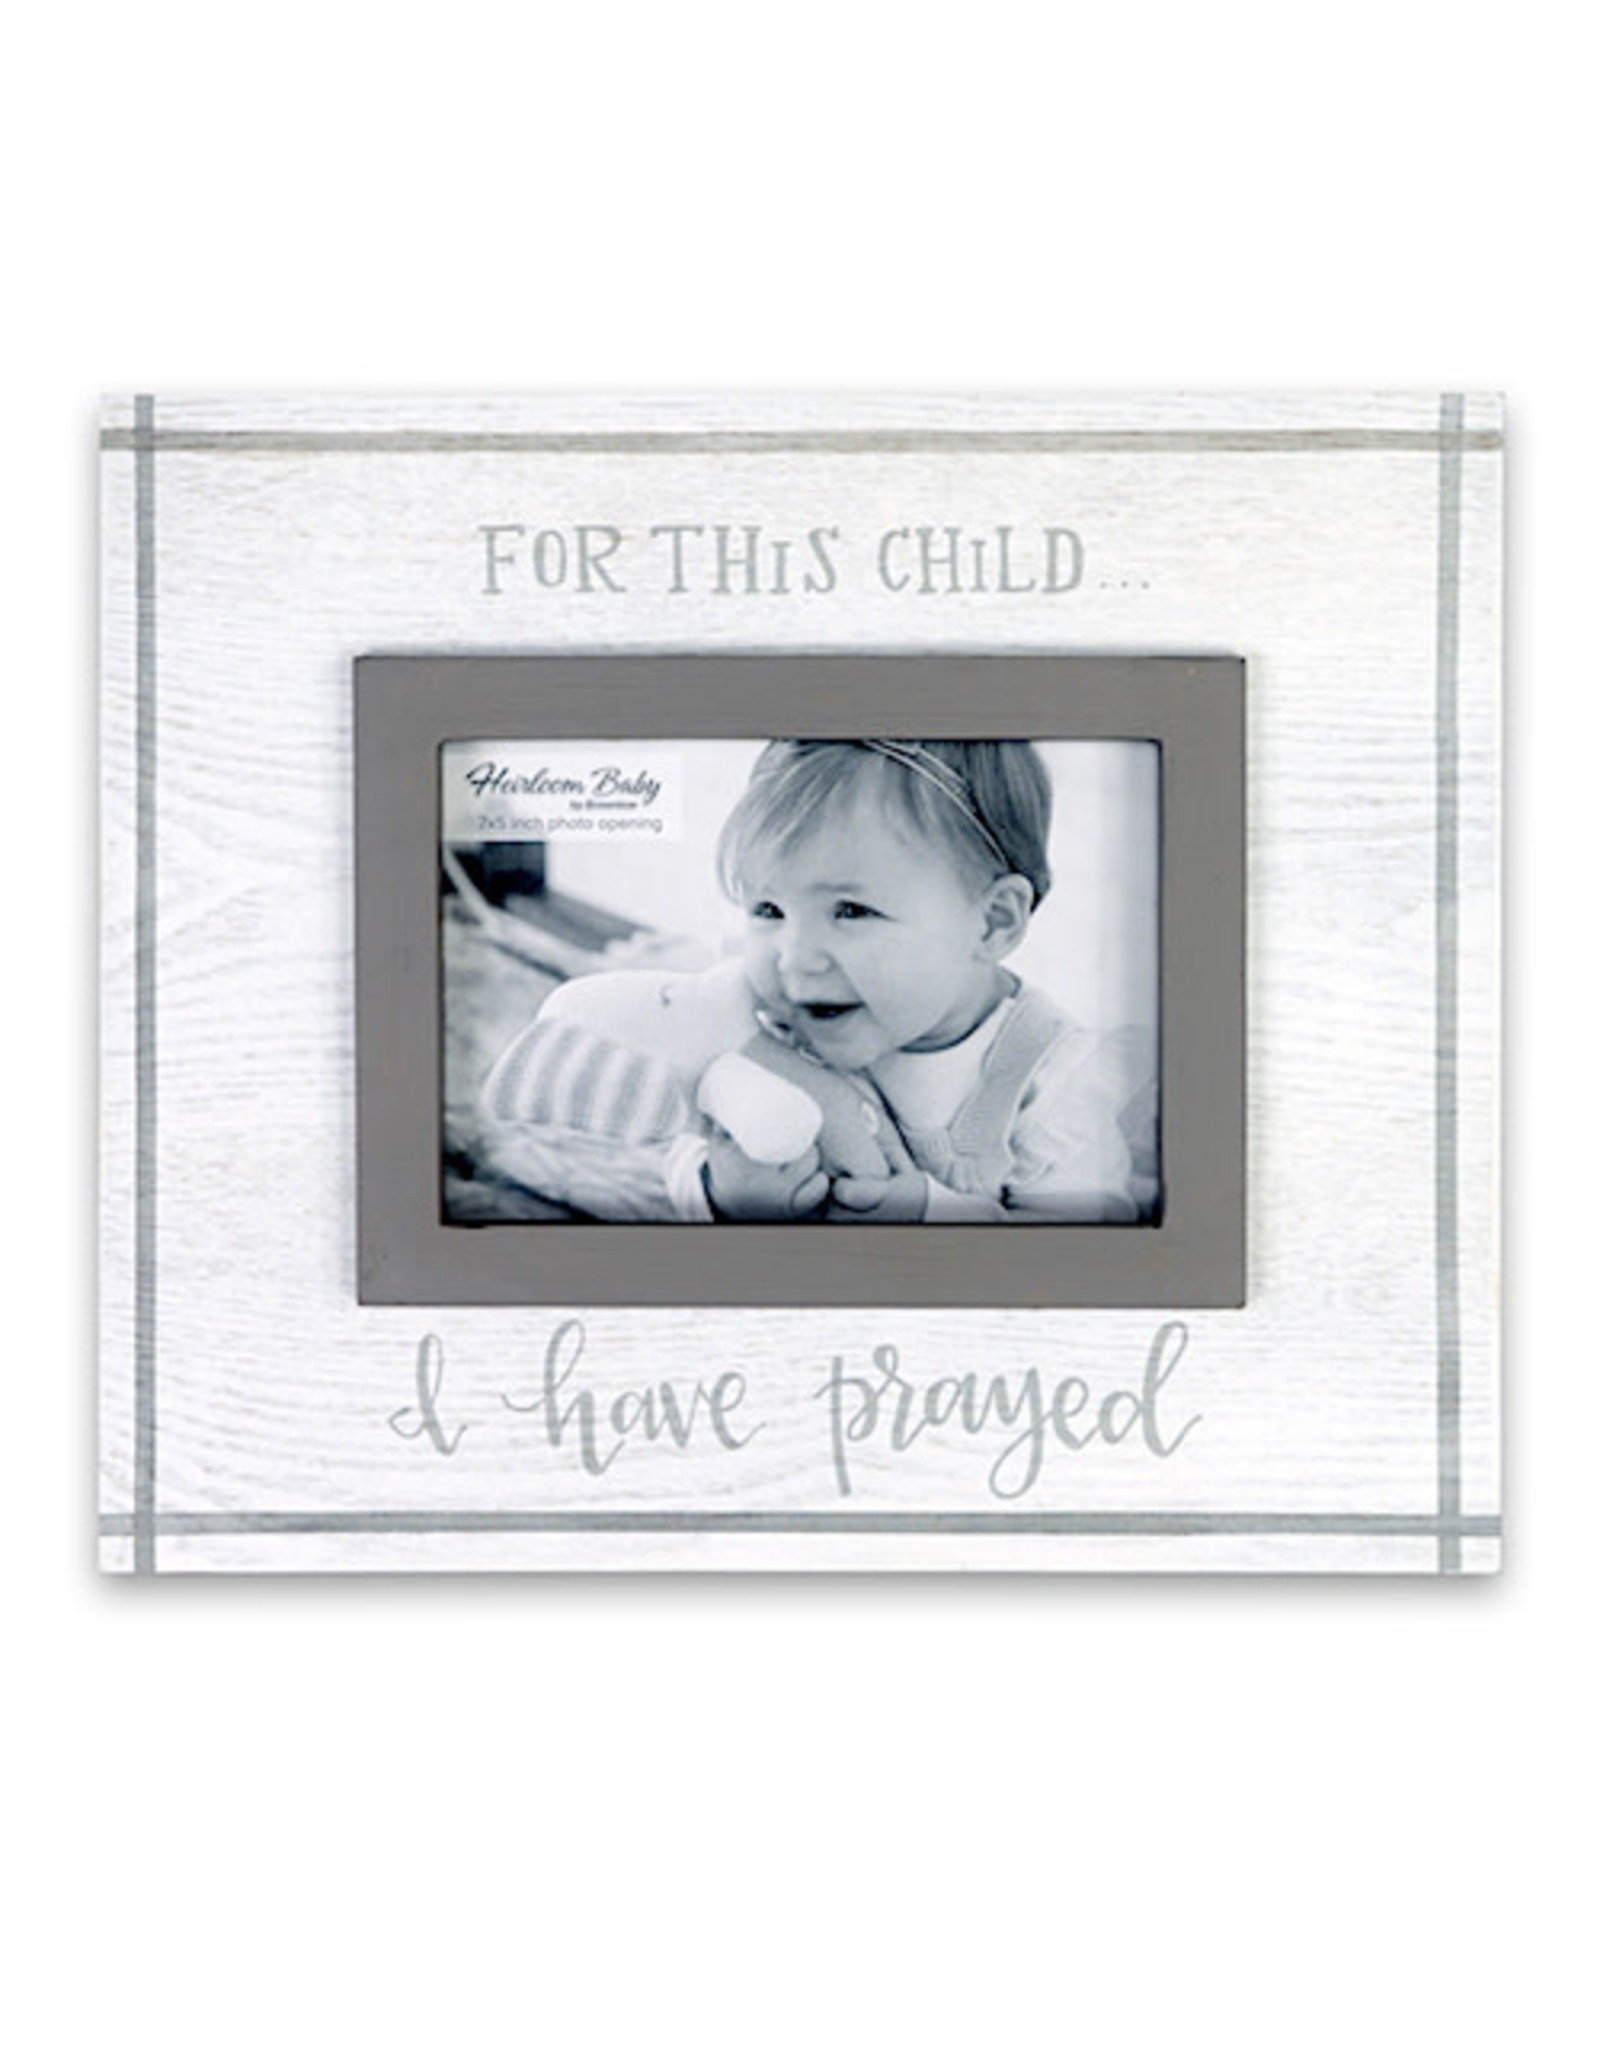 Brownlow Gifts For This Child Heirloom Frame